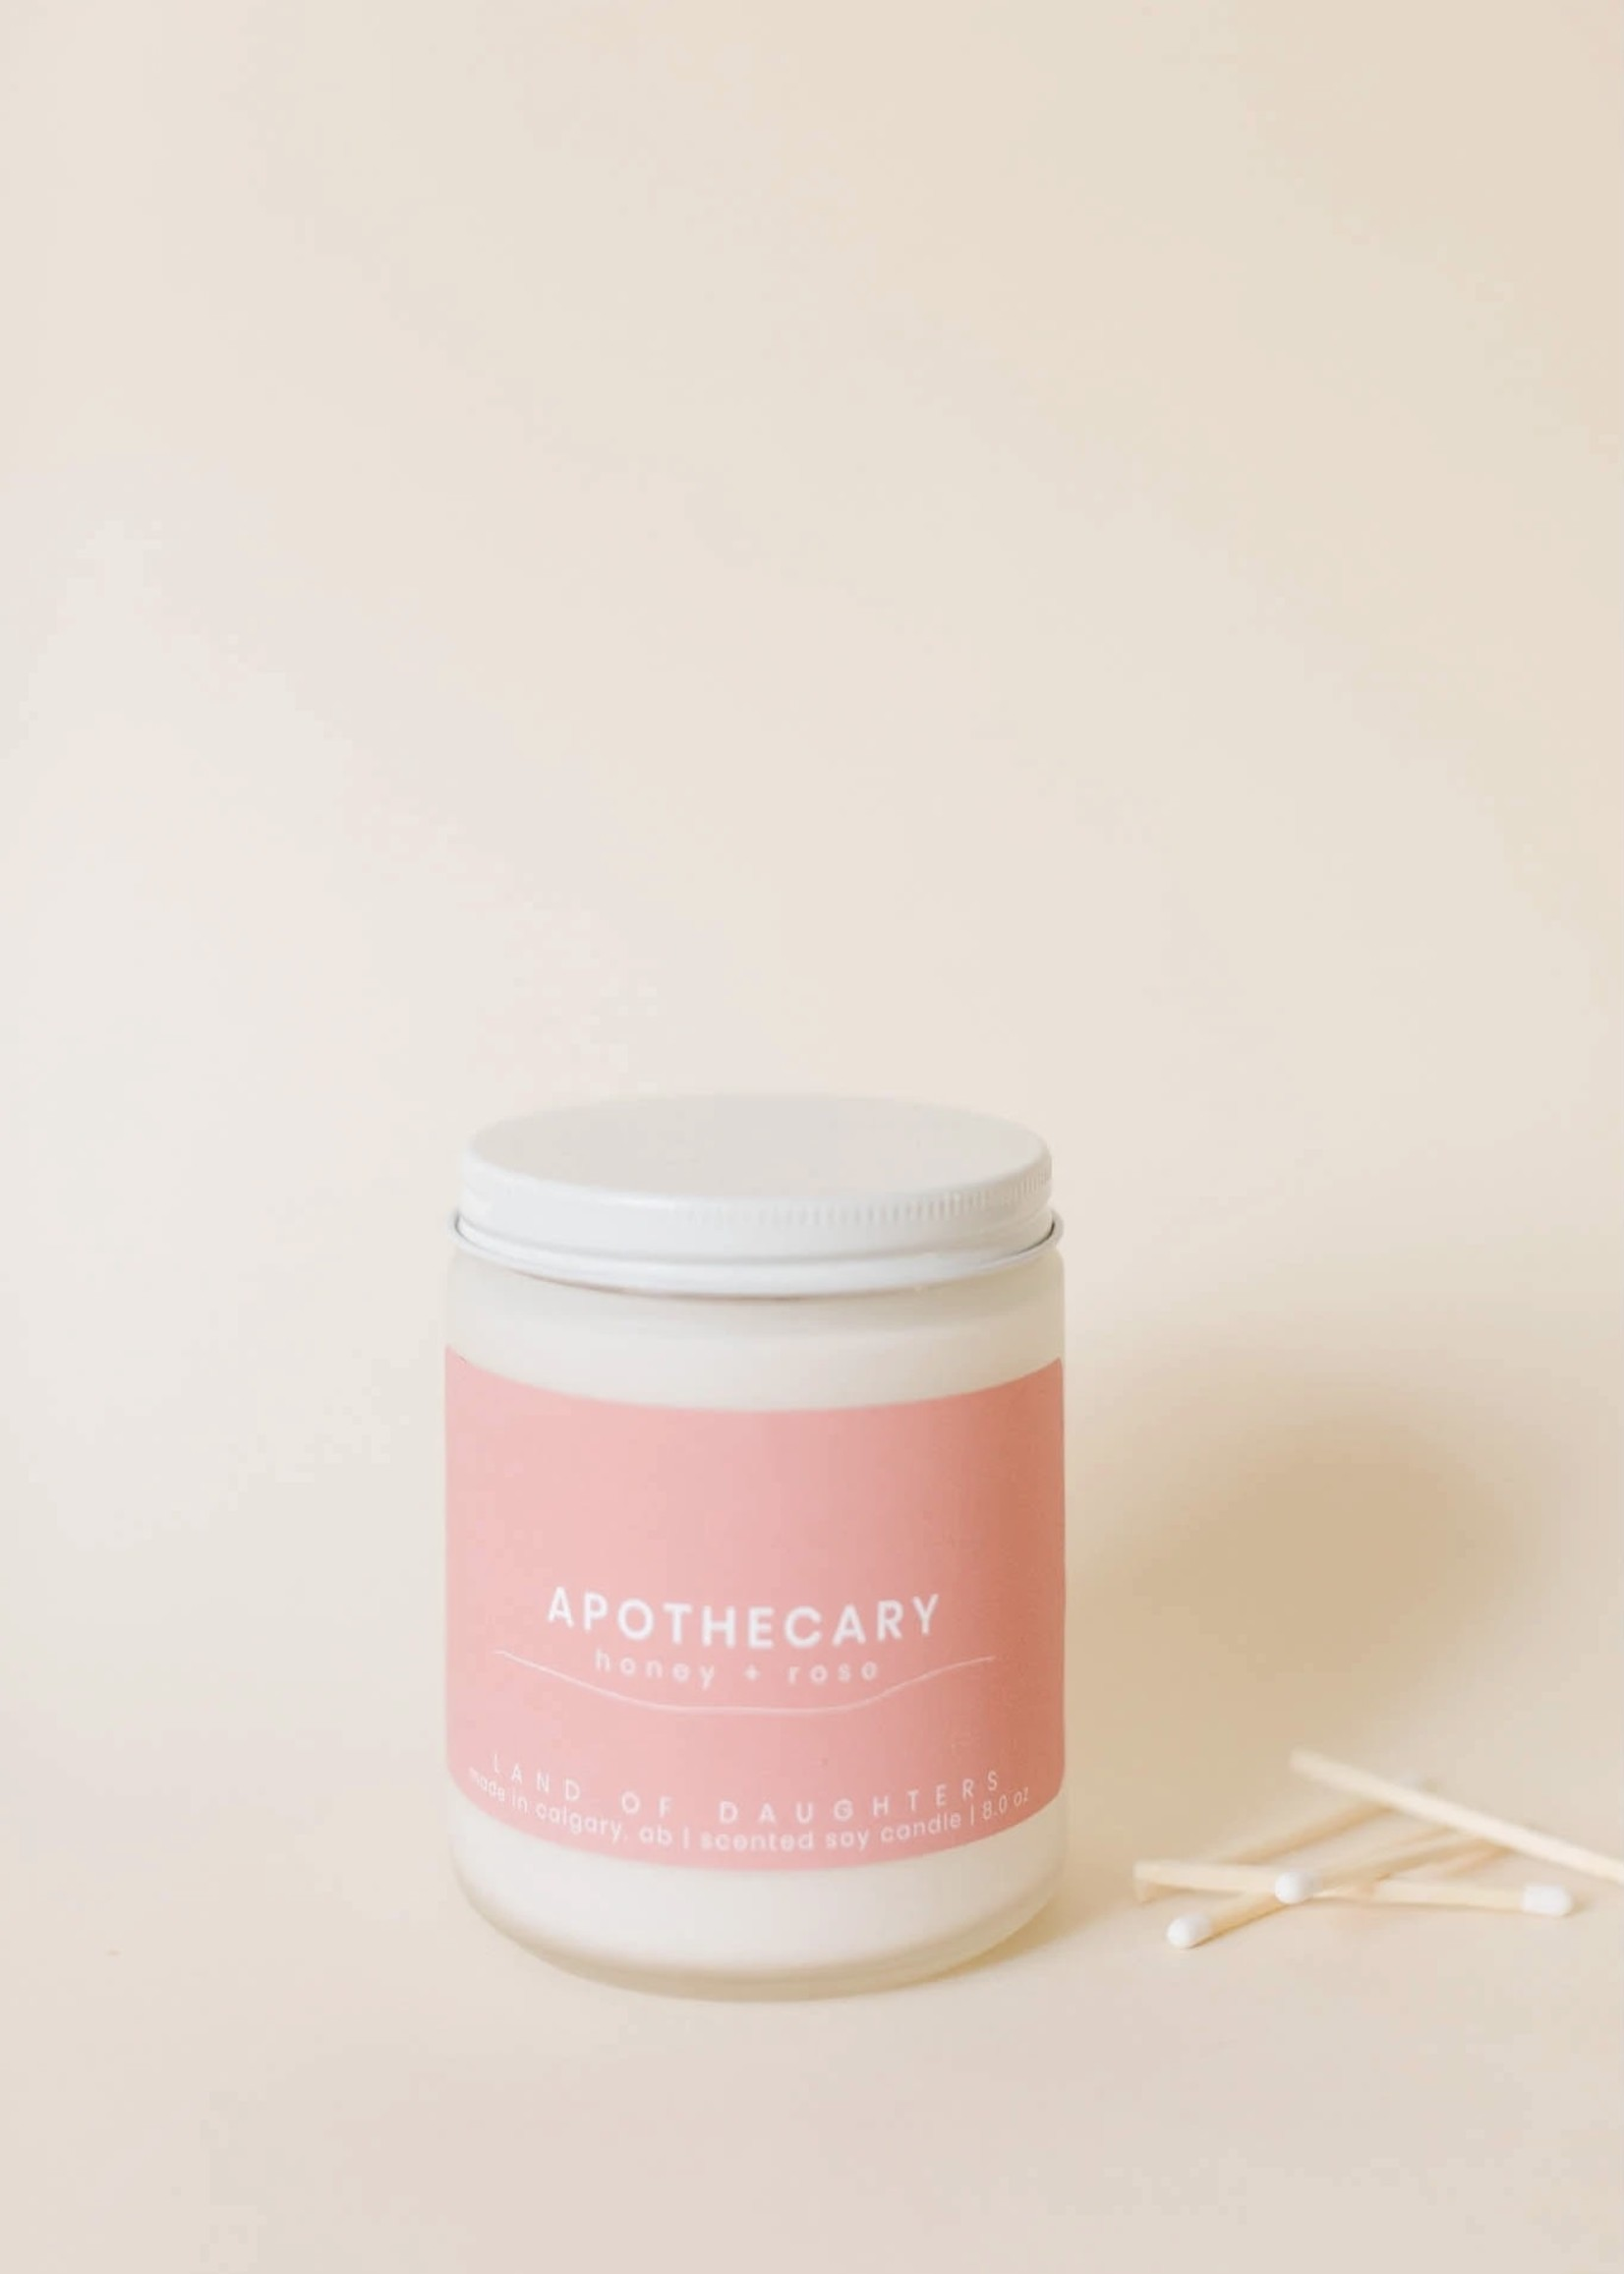 LAND of DAUGHTERS Apothecary CANDLE